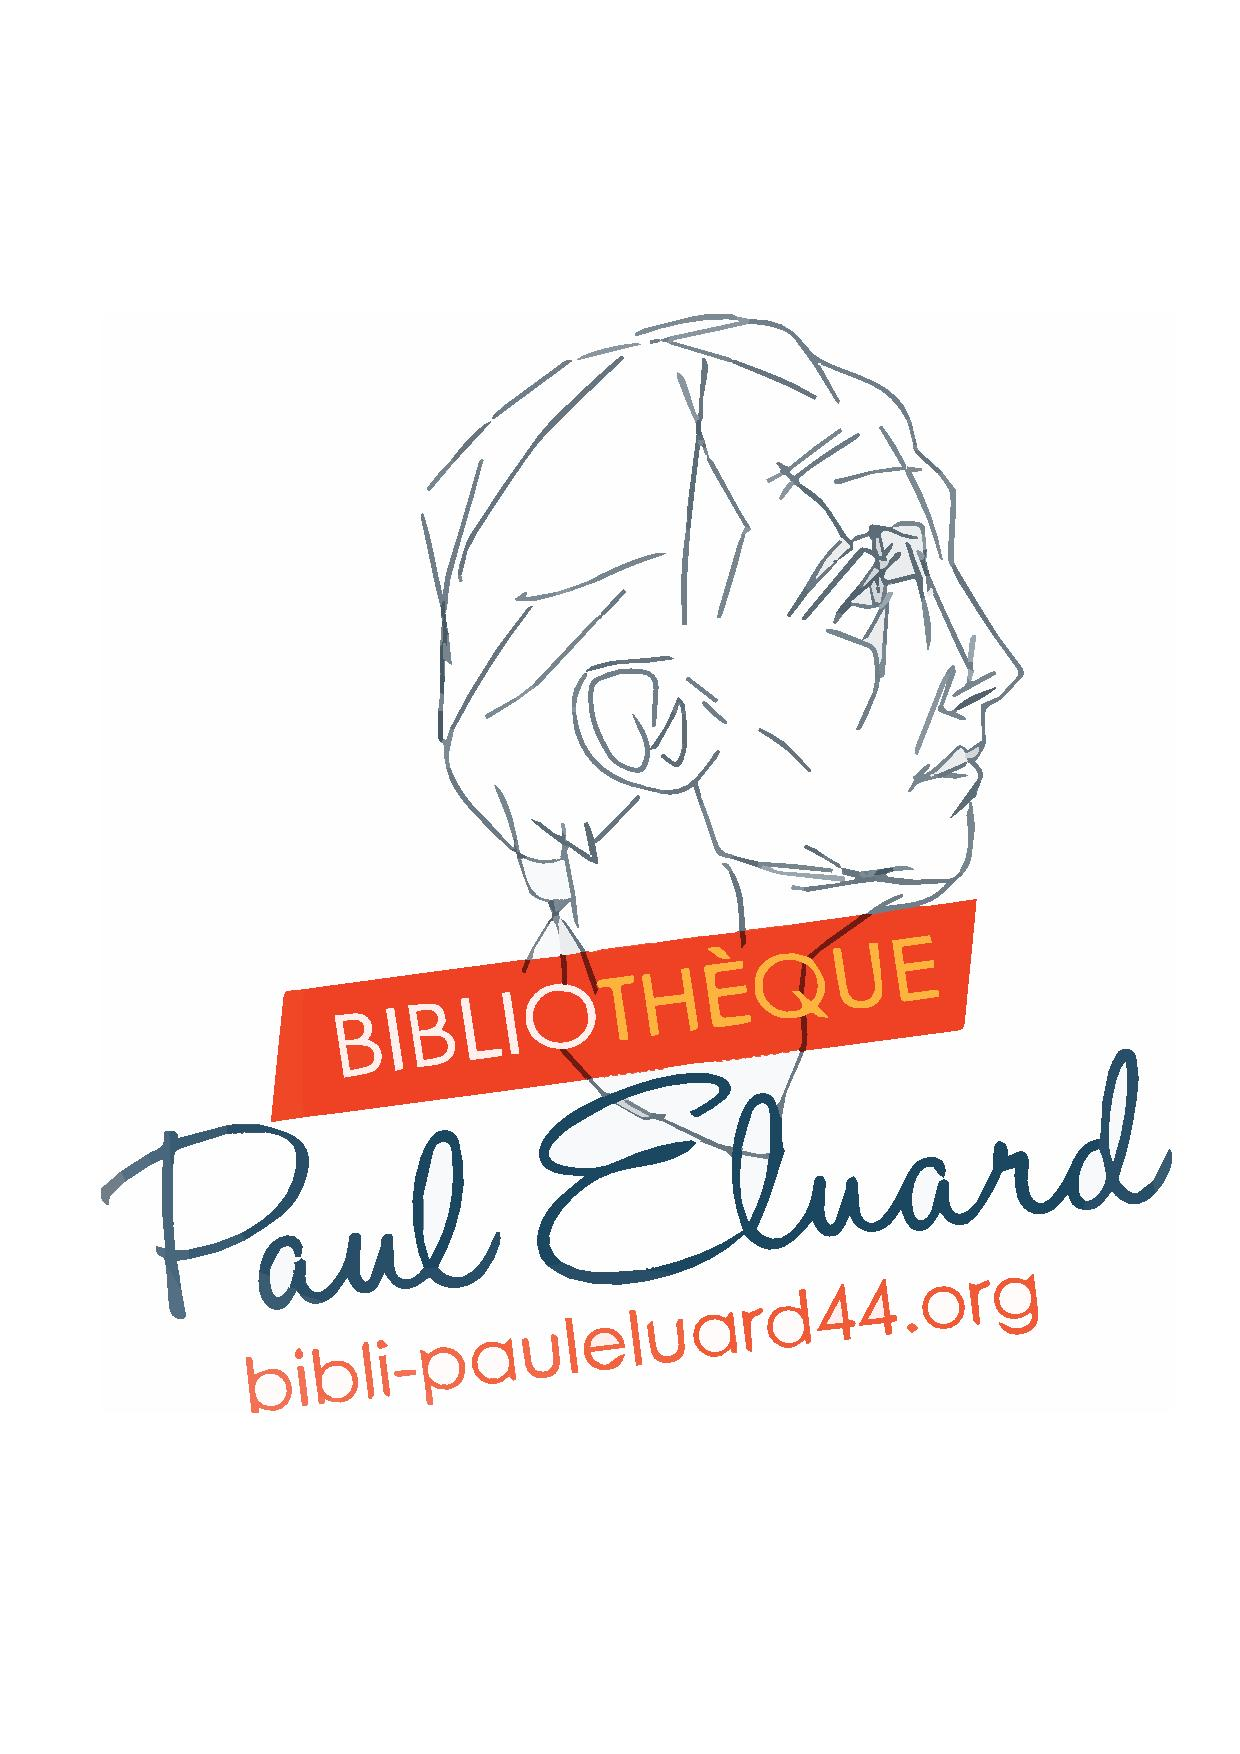 https://tourdelarussie30jours.files.wordpress.com/2018/11/logo-bibliothc3a8que-paul-eluard-c-page-001.jpg